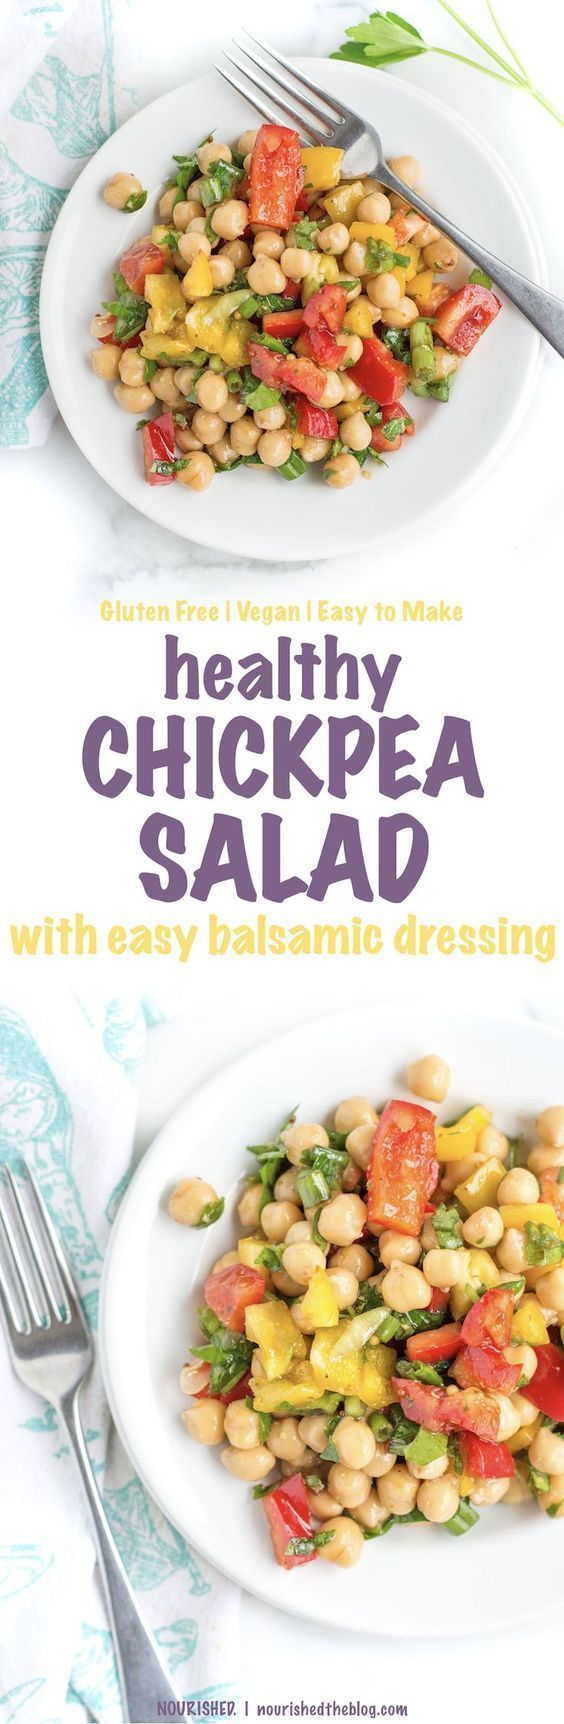 Healthy Chickpea Salad with Easy Balsamic Dressing | This healthy salad recipe makes for a quick and easy vegan and gluten free lunch packed with fresh veggies, lots of healthy fats and protein!